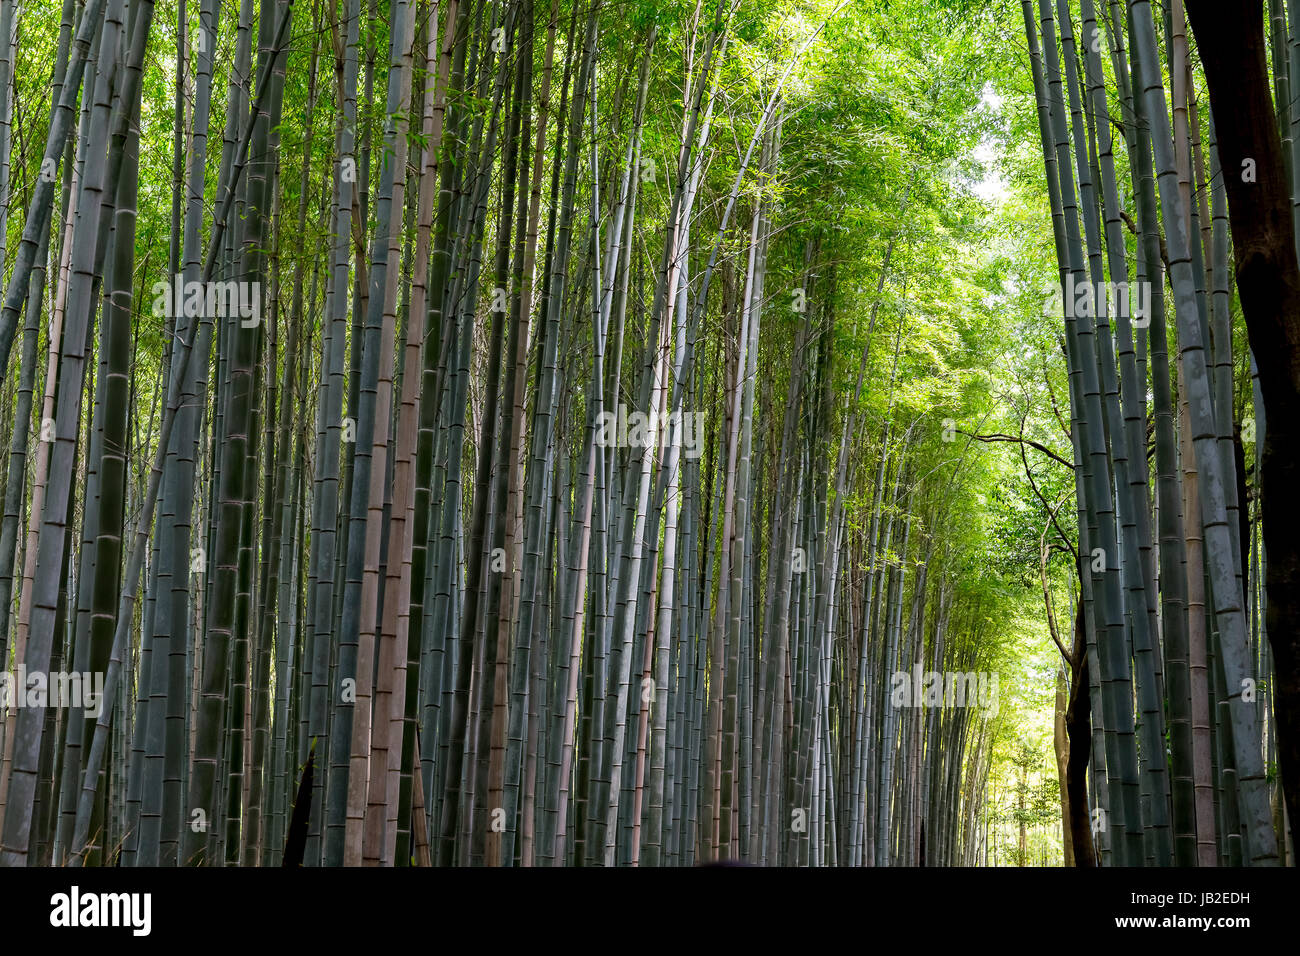 Bambuswald in Arashiyama, Kyoto, Japan. Stockbild